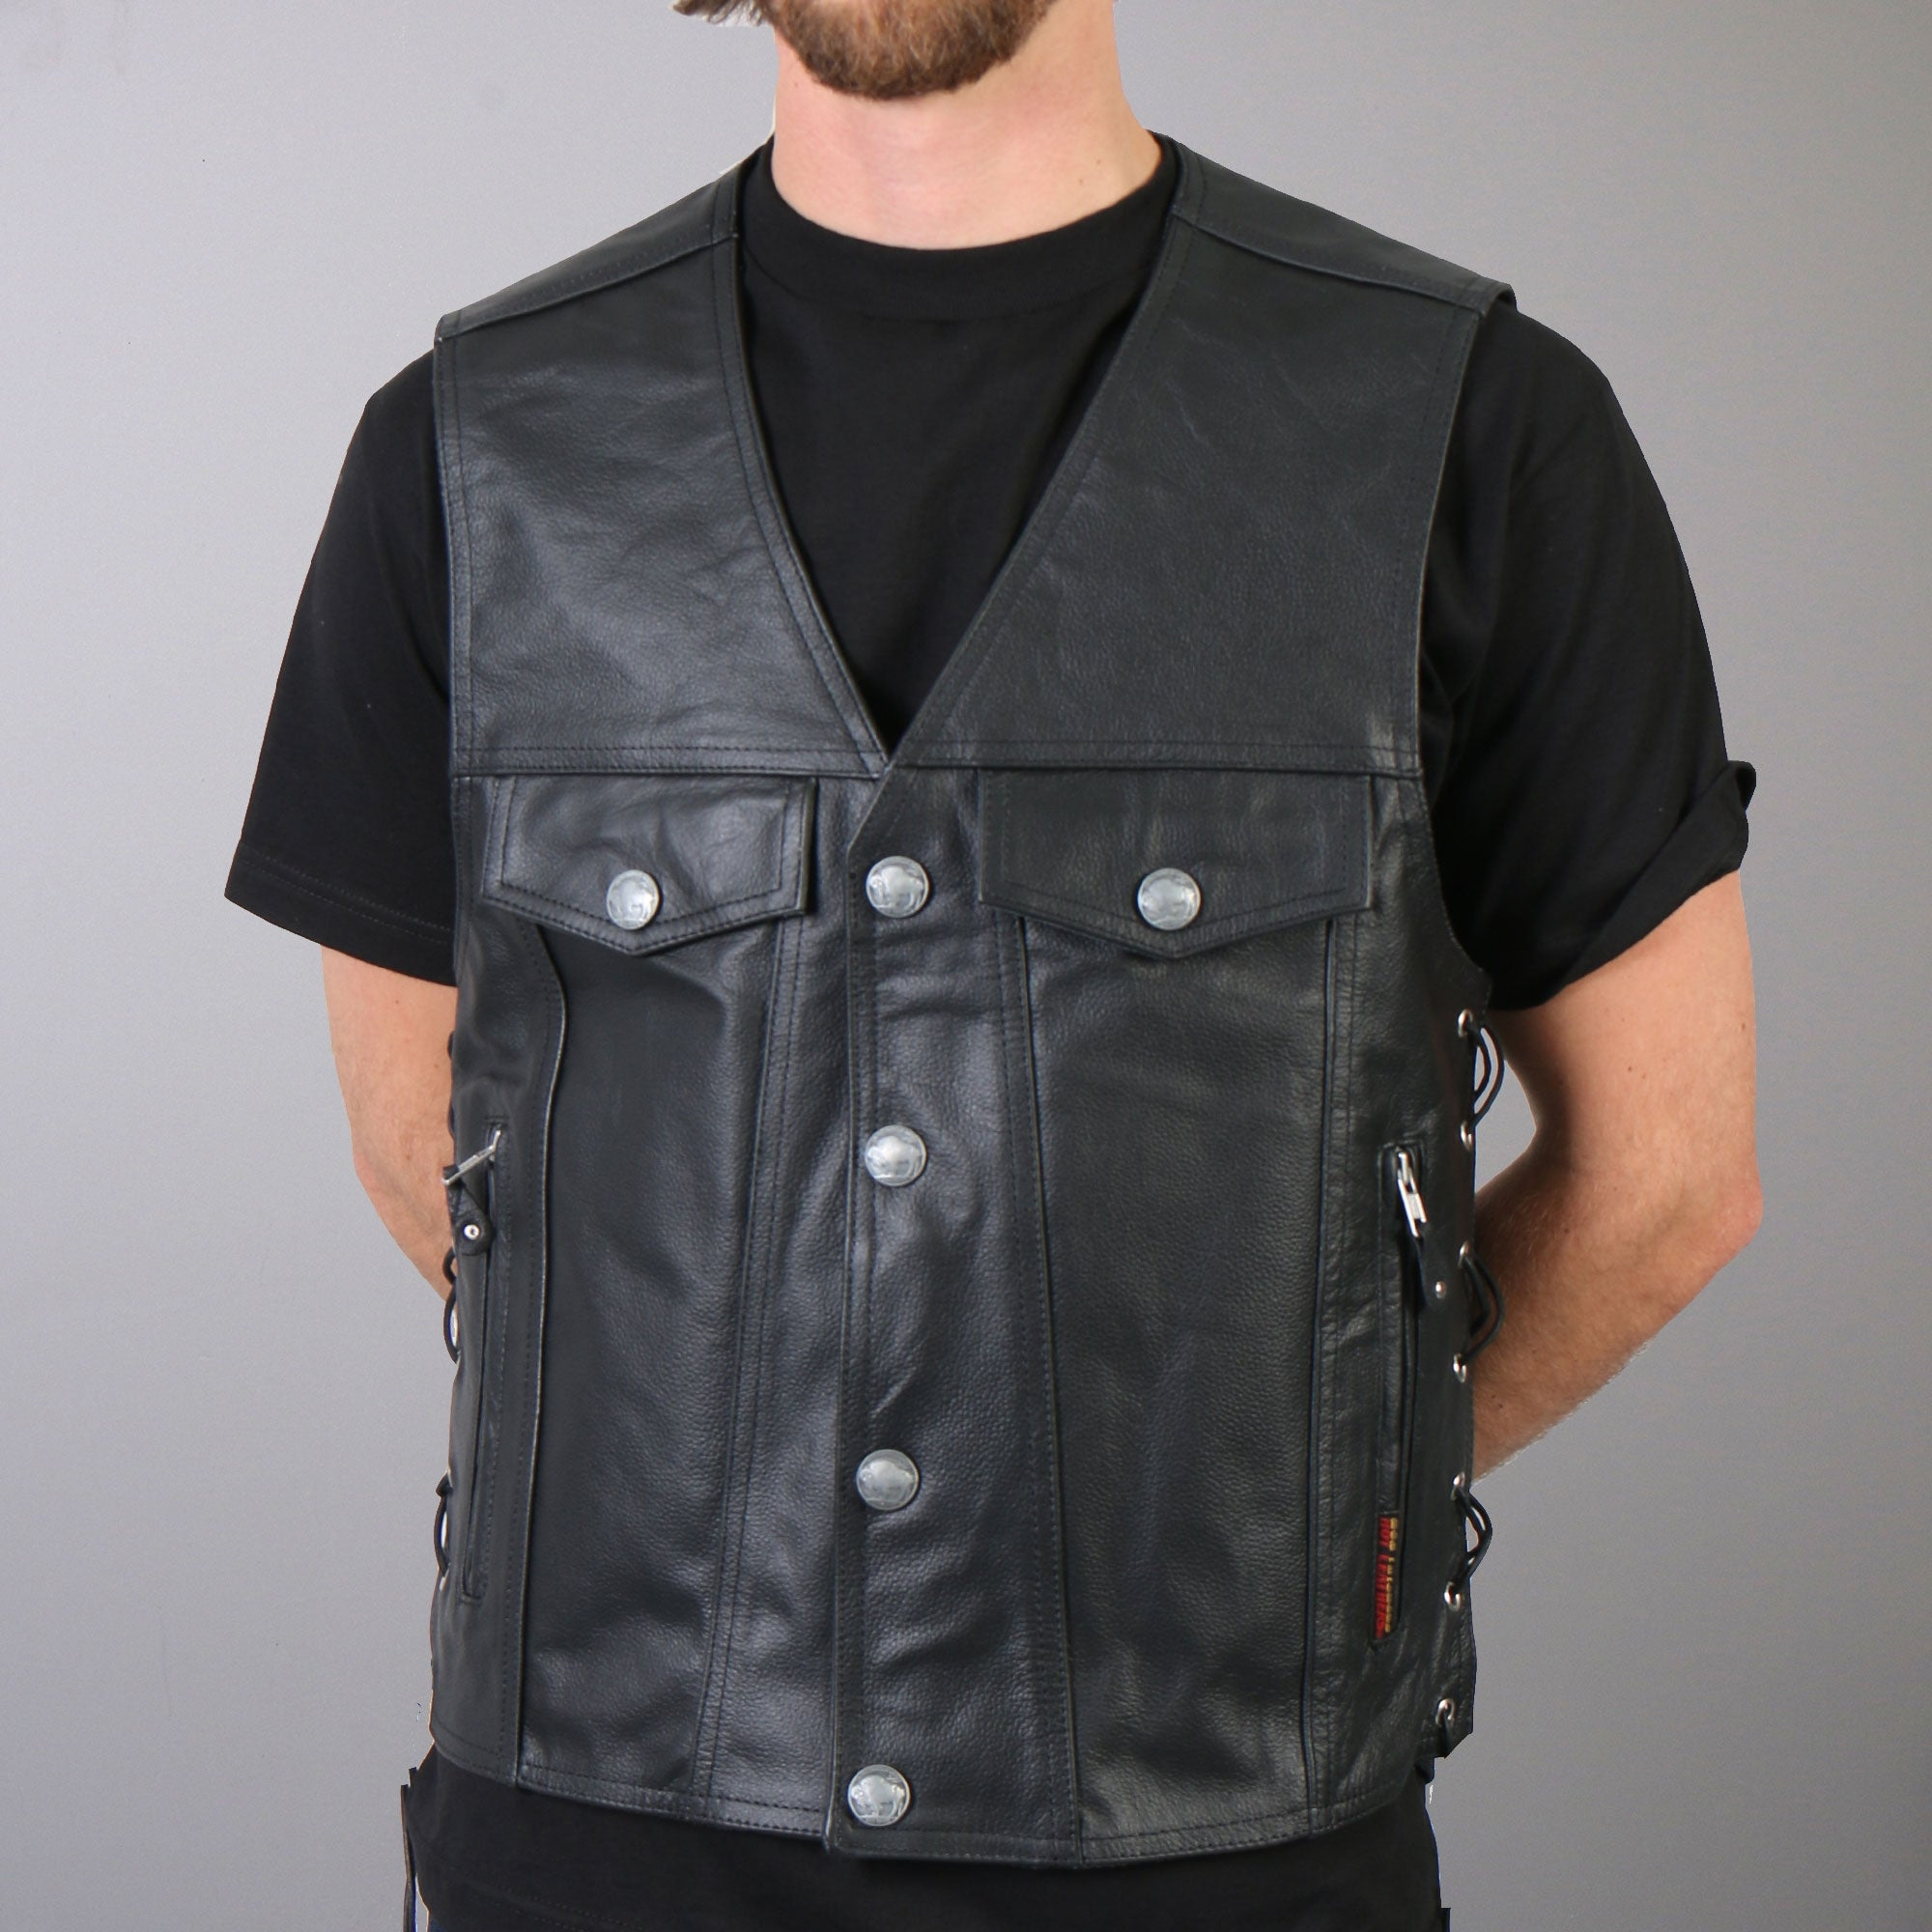 Hot Leathers Vest Men's Satin Lining 6 Pocket